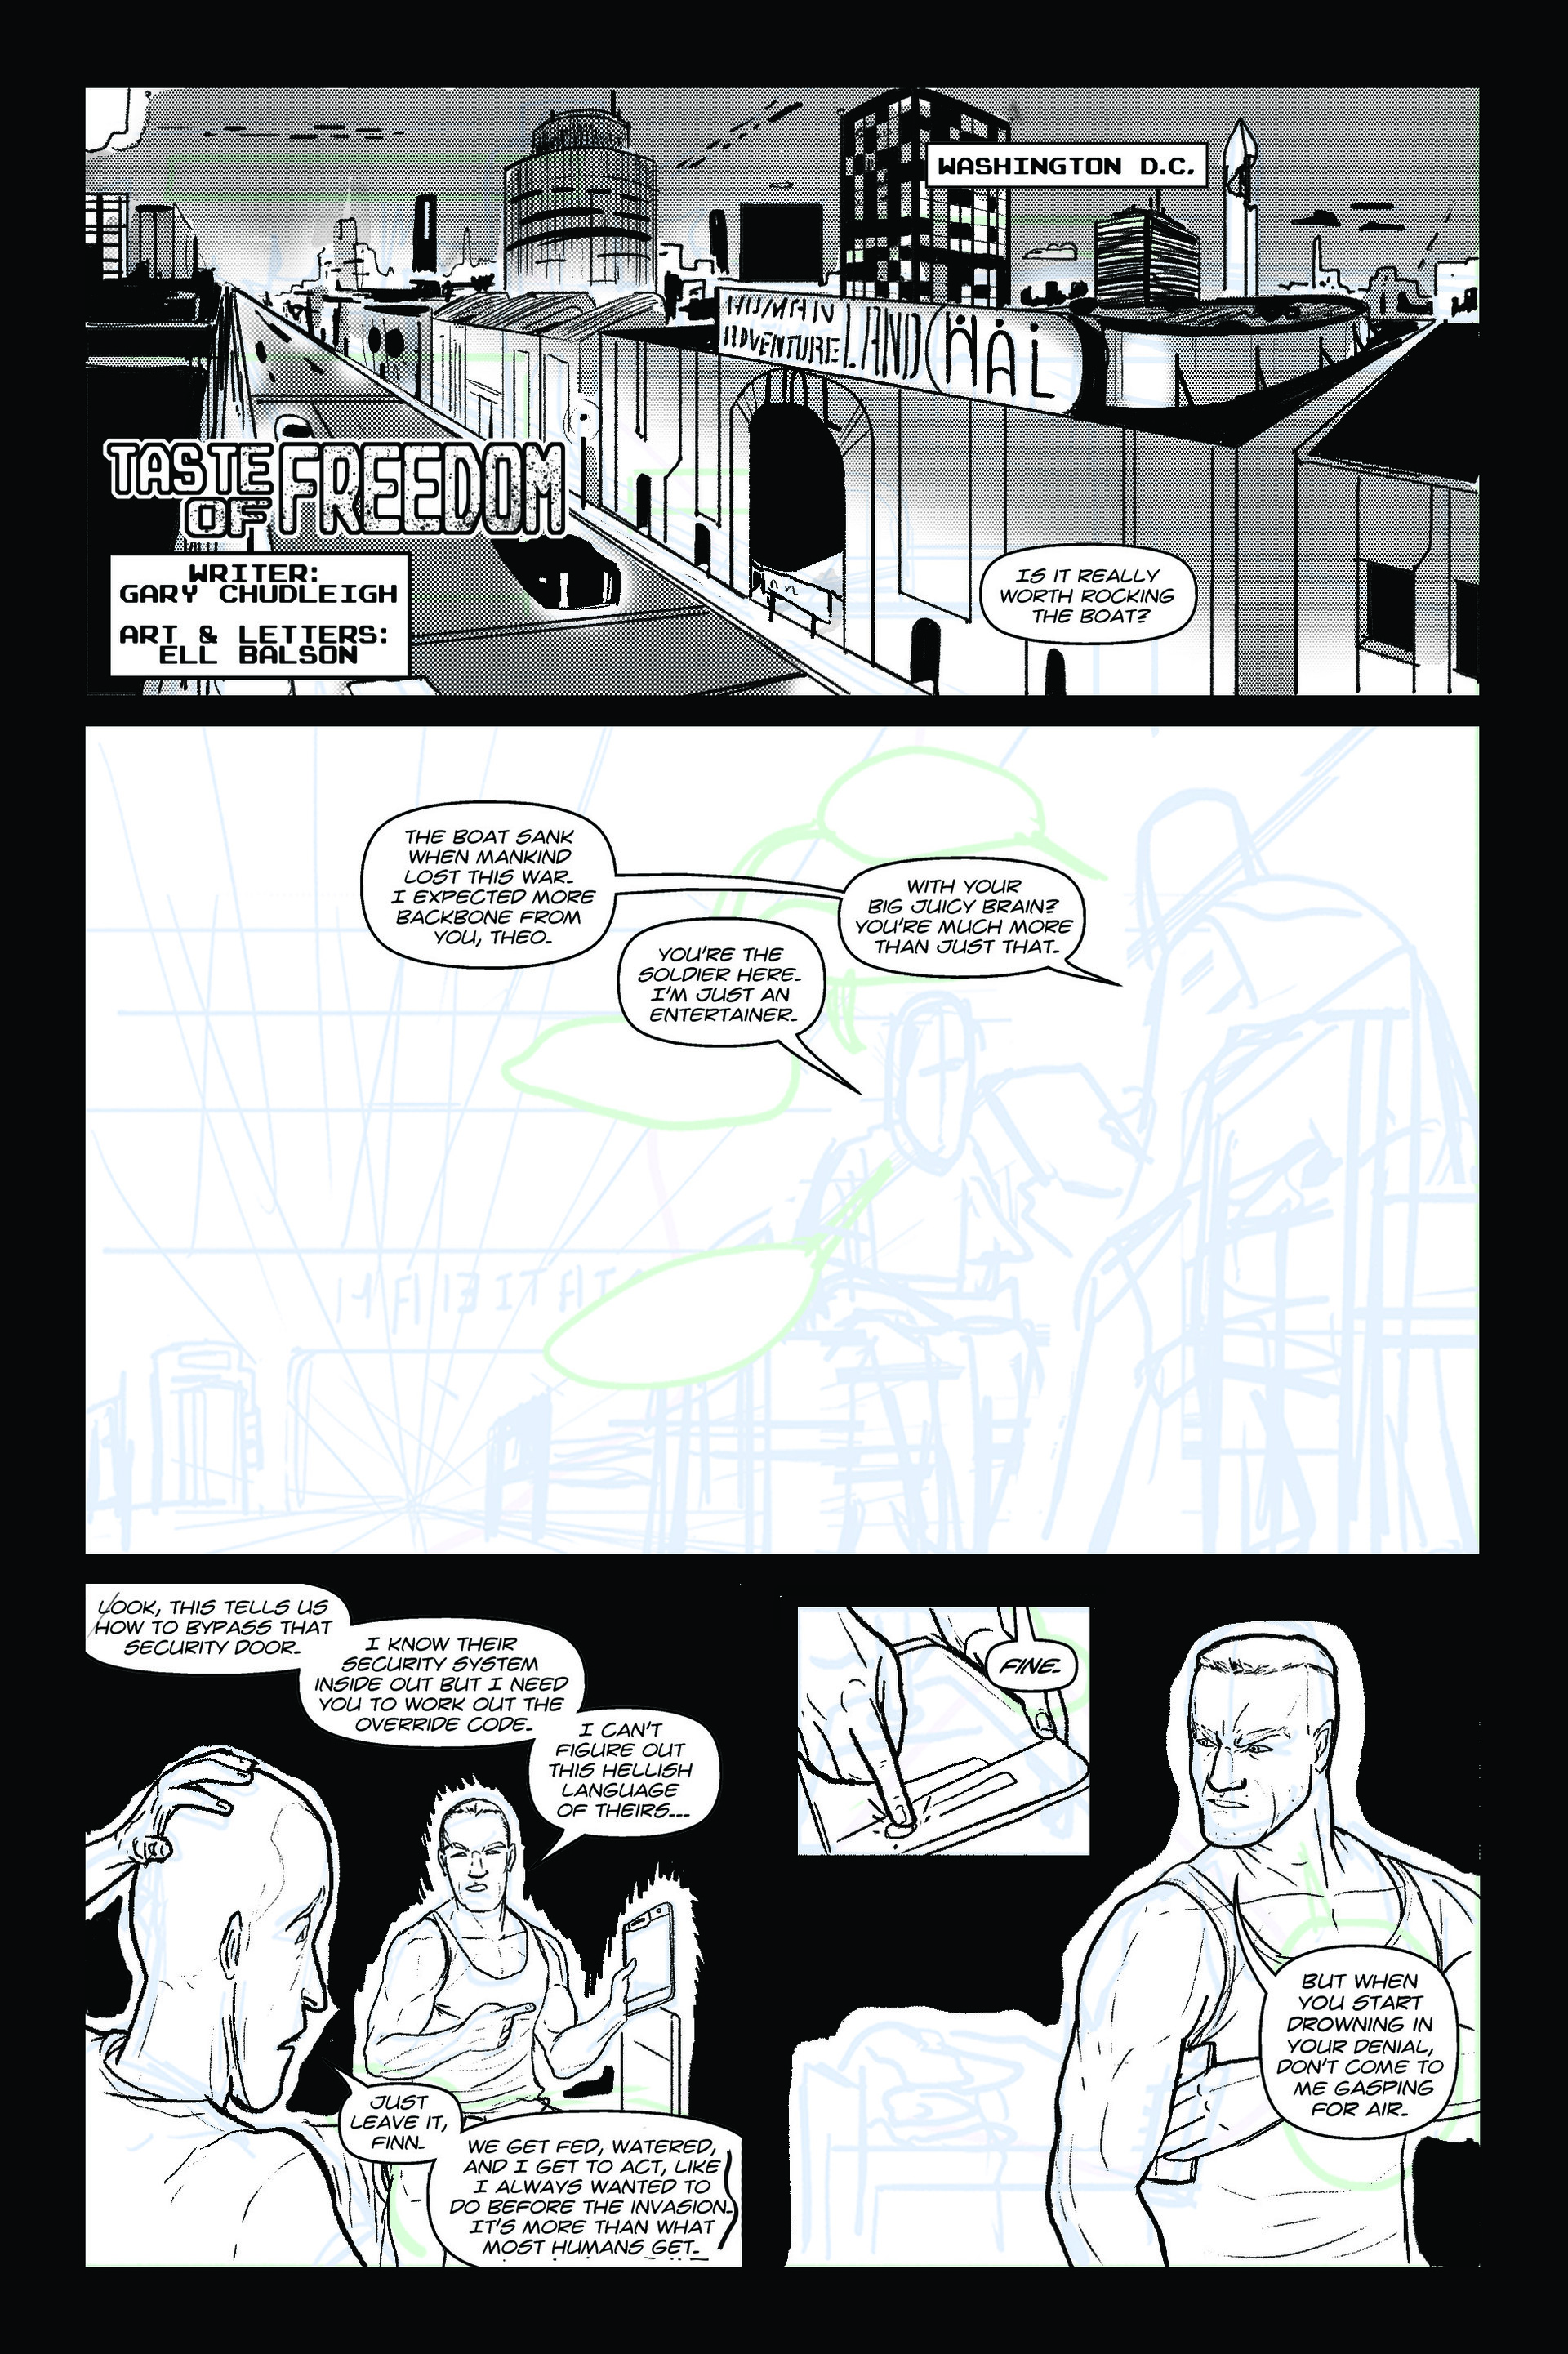 Elliot balson tof page 1 wip 2